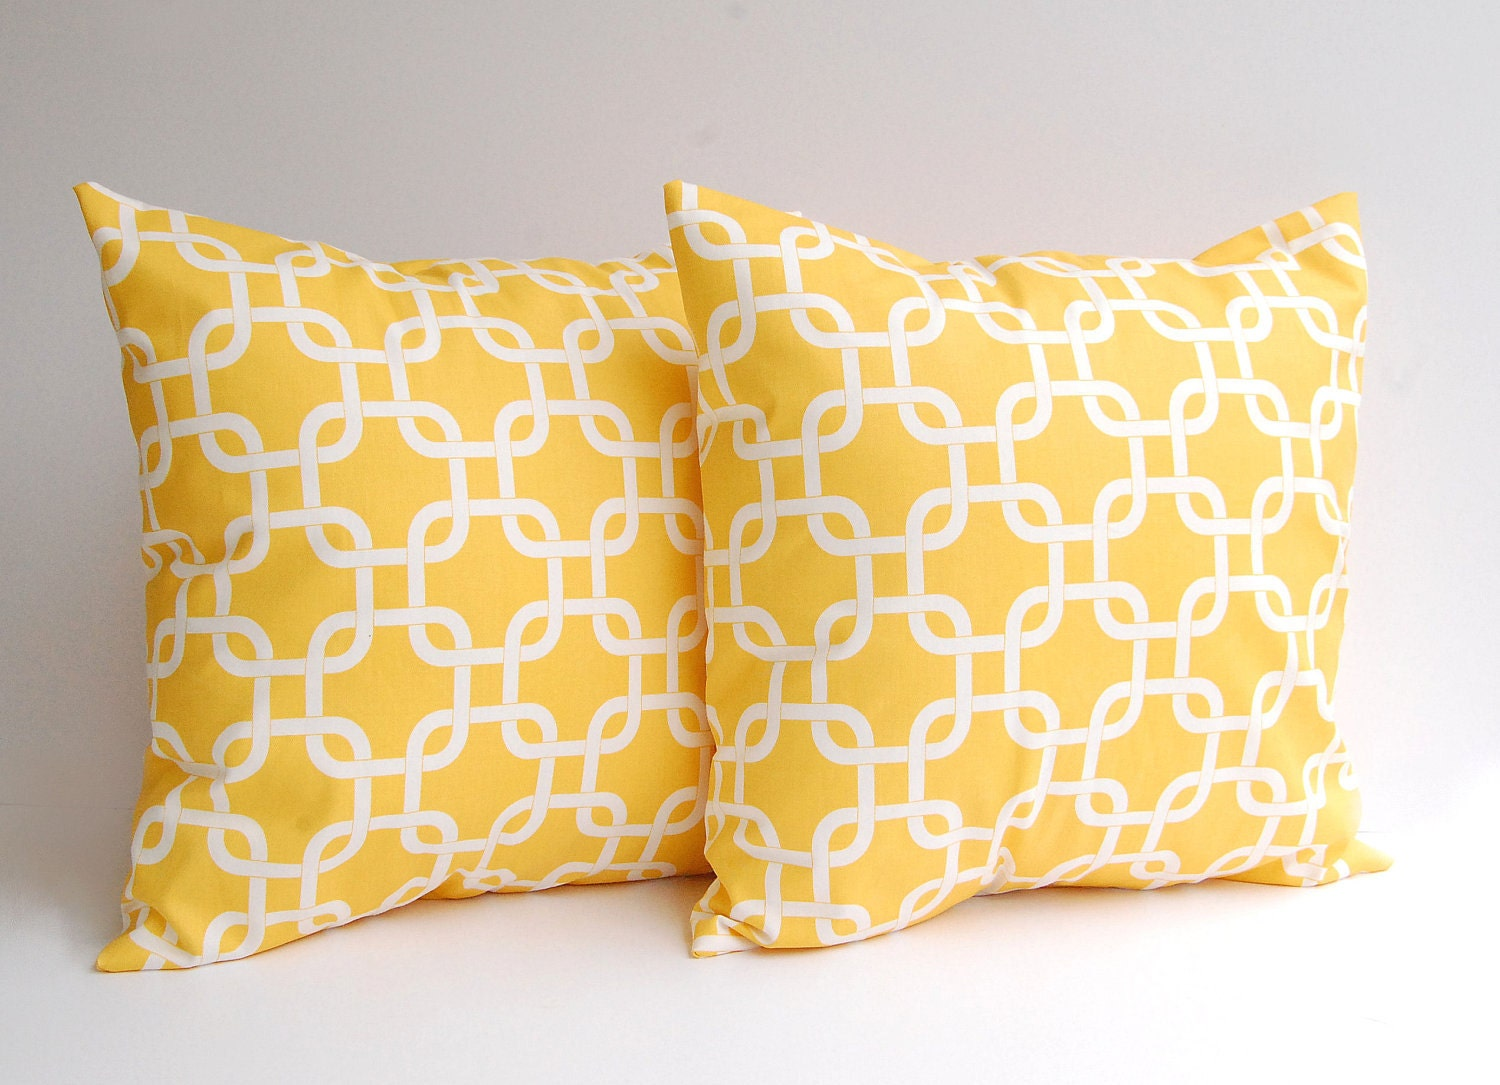 Yellow Throw Pillows Set Of Two 18 X 18 Inches By